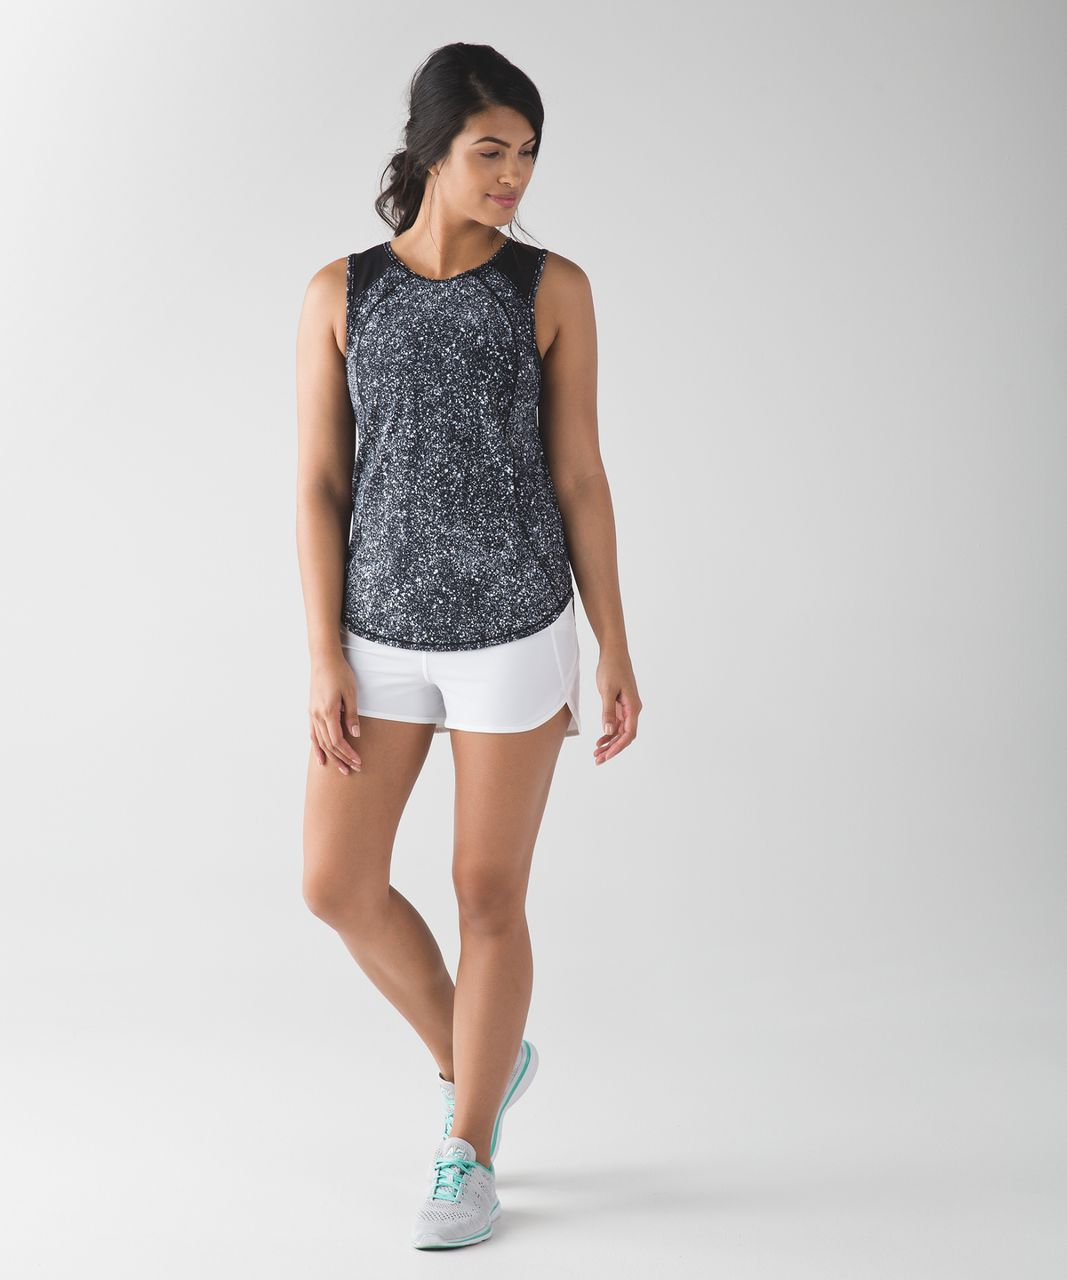 Lululemon Sculpt Tank - Splatter White Black / Black